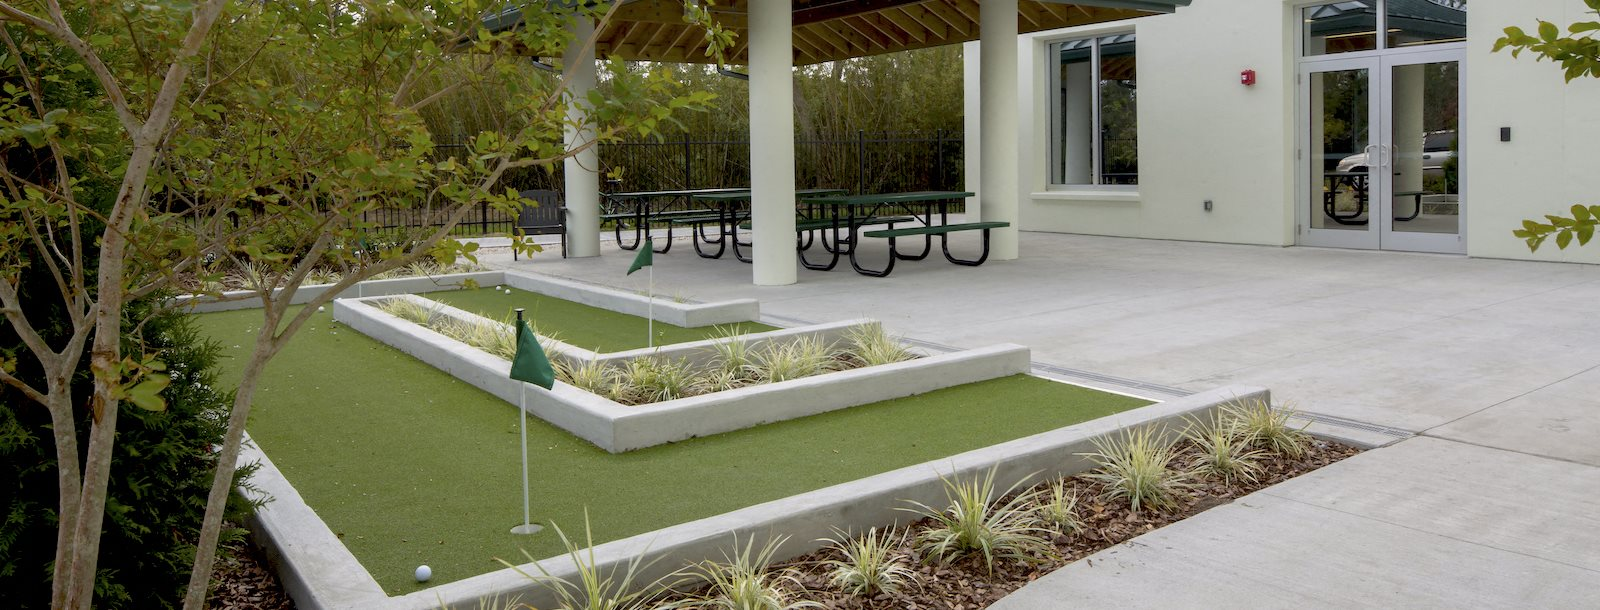 Mount Carmel Gardens senior apartments in jacksonville, florida putt putt course